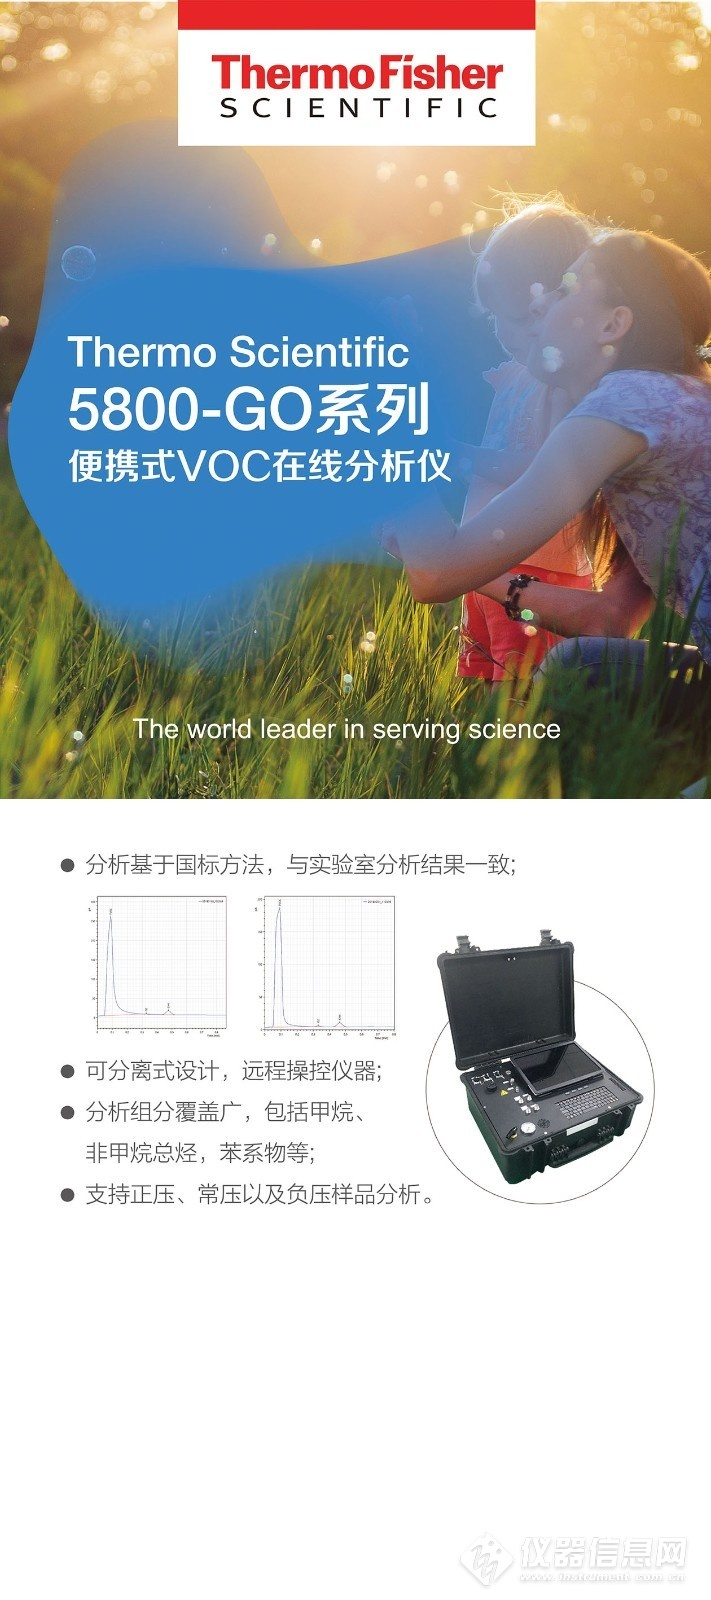 Thermo Scientific 5800-GO系列便攜式VOC分析儀.jpg